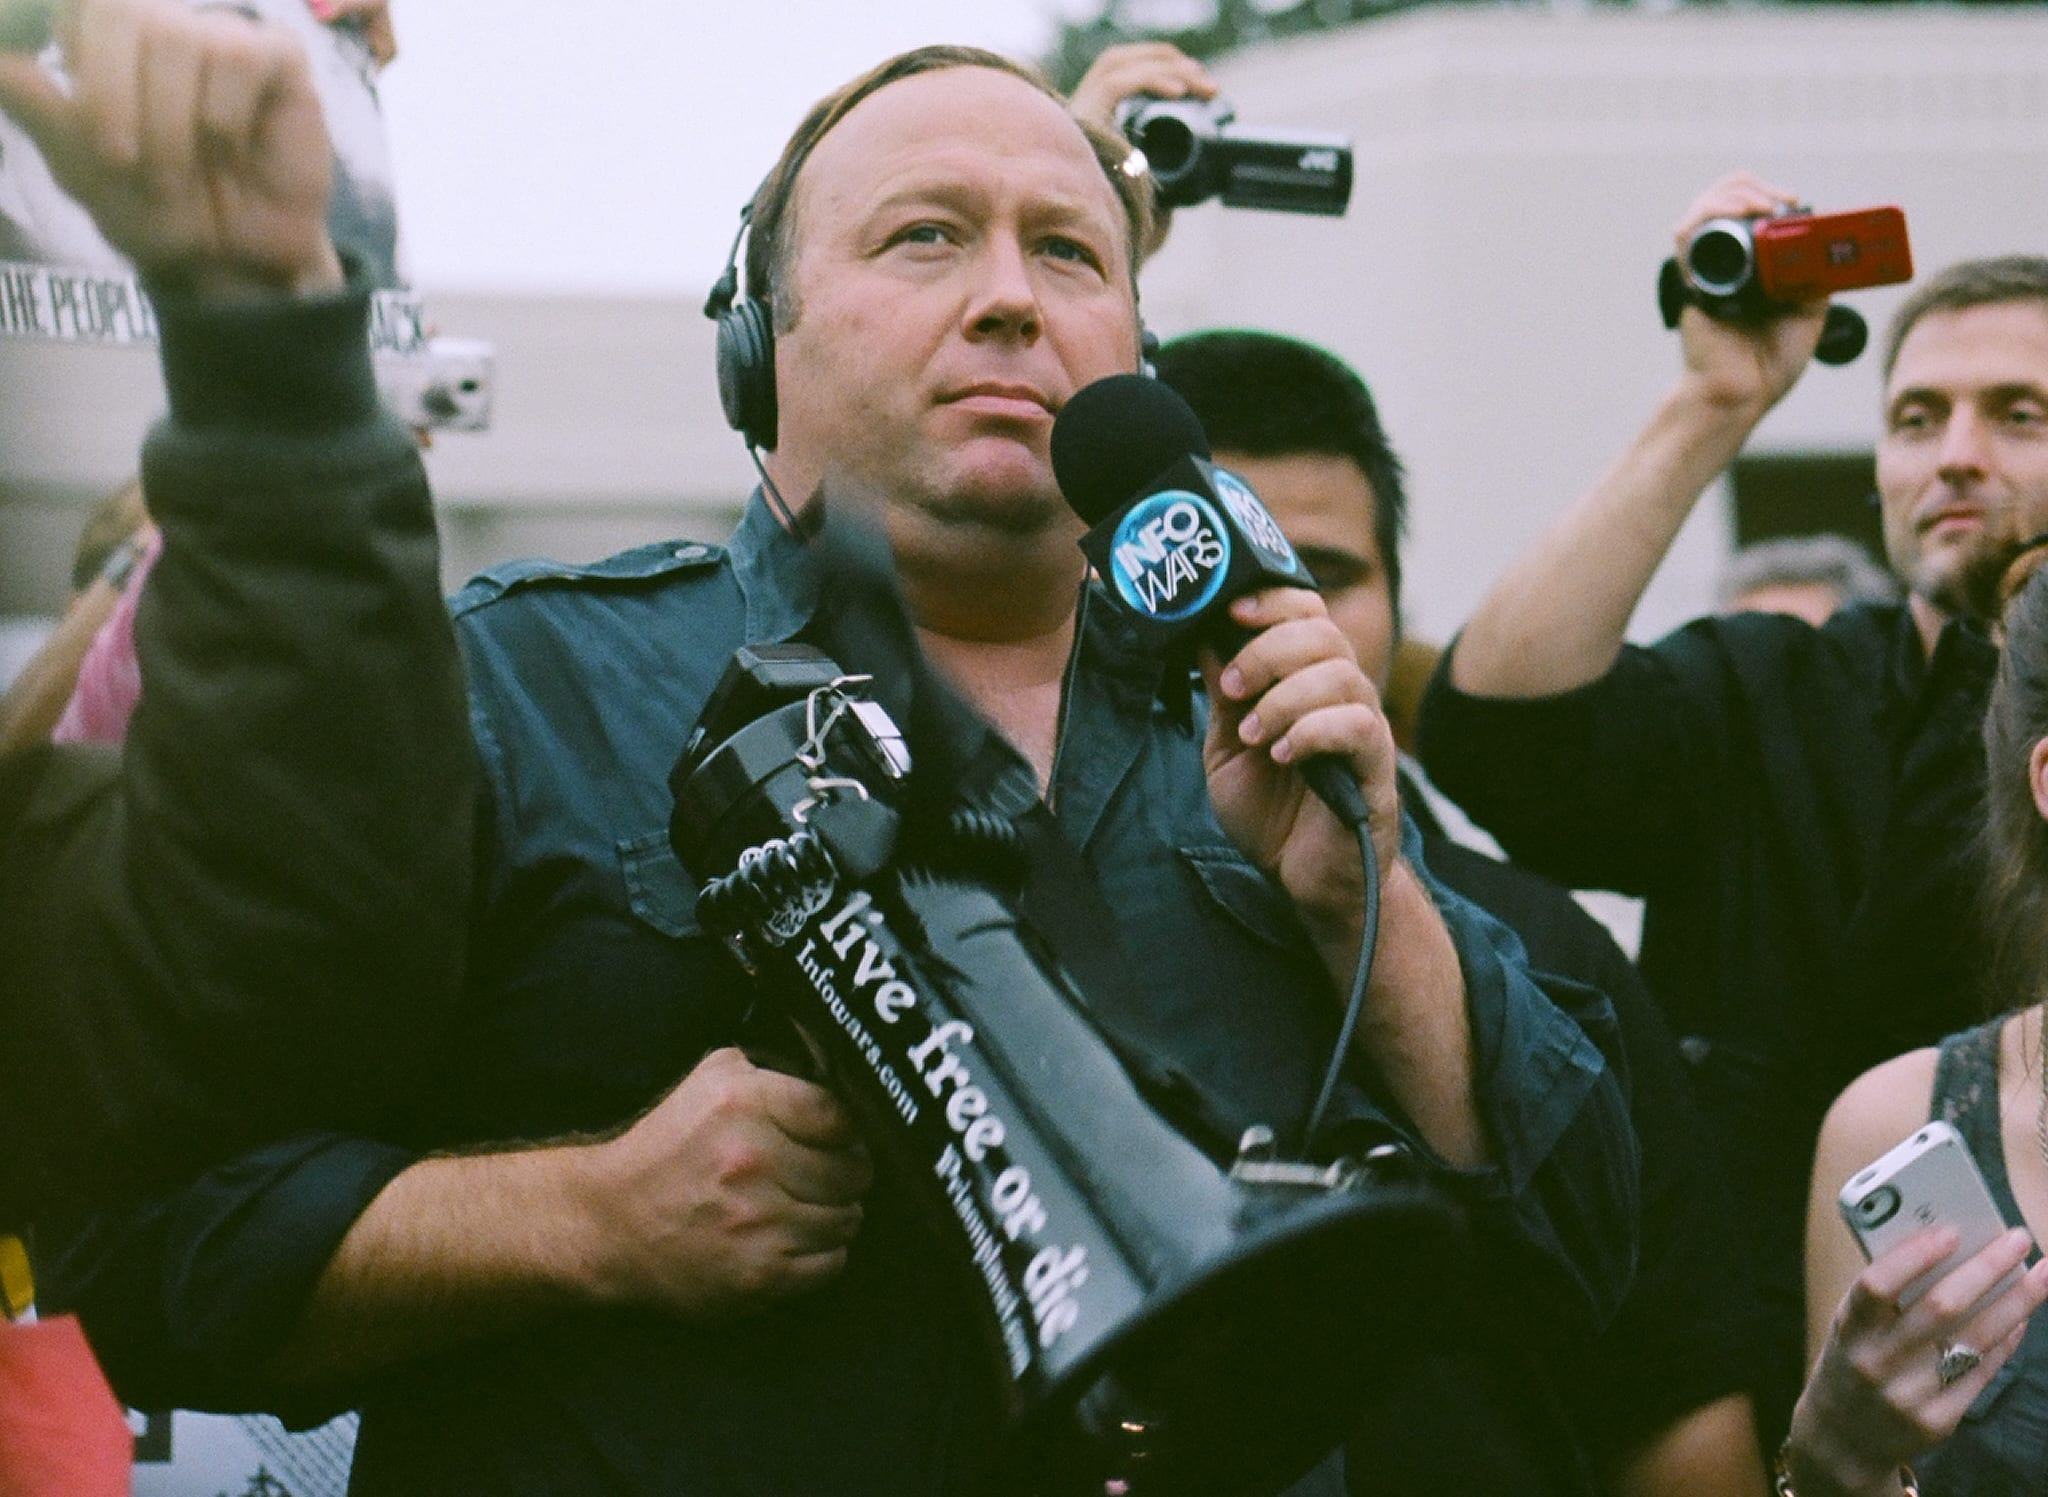 Sandy Hook Families File Suit Against Infowars' Alex Jones